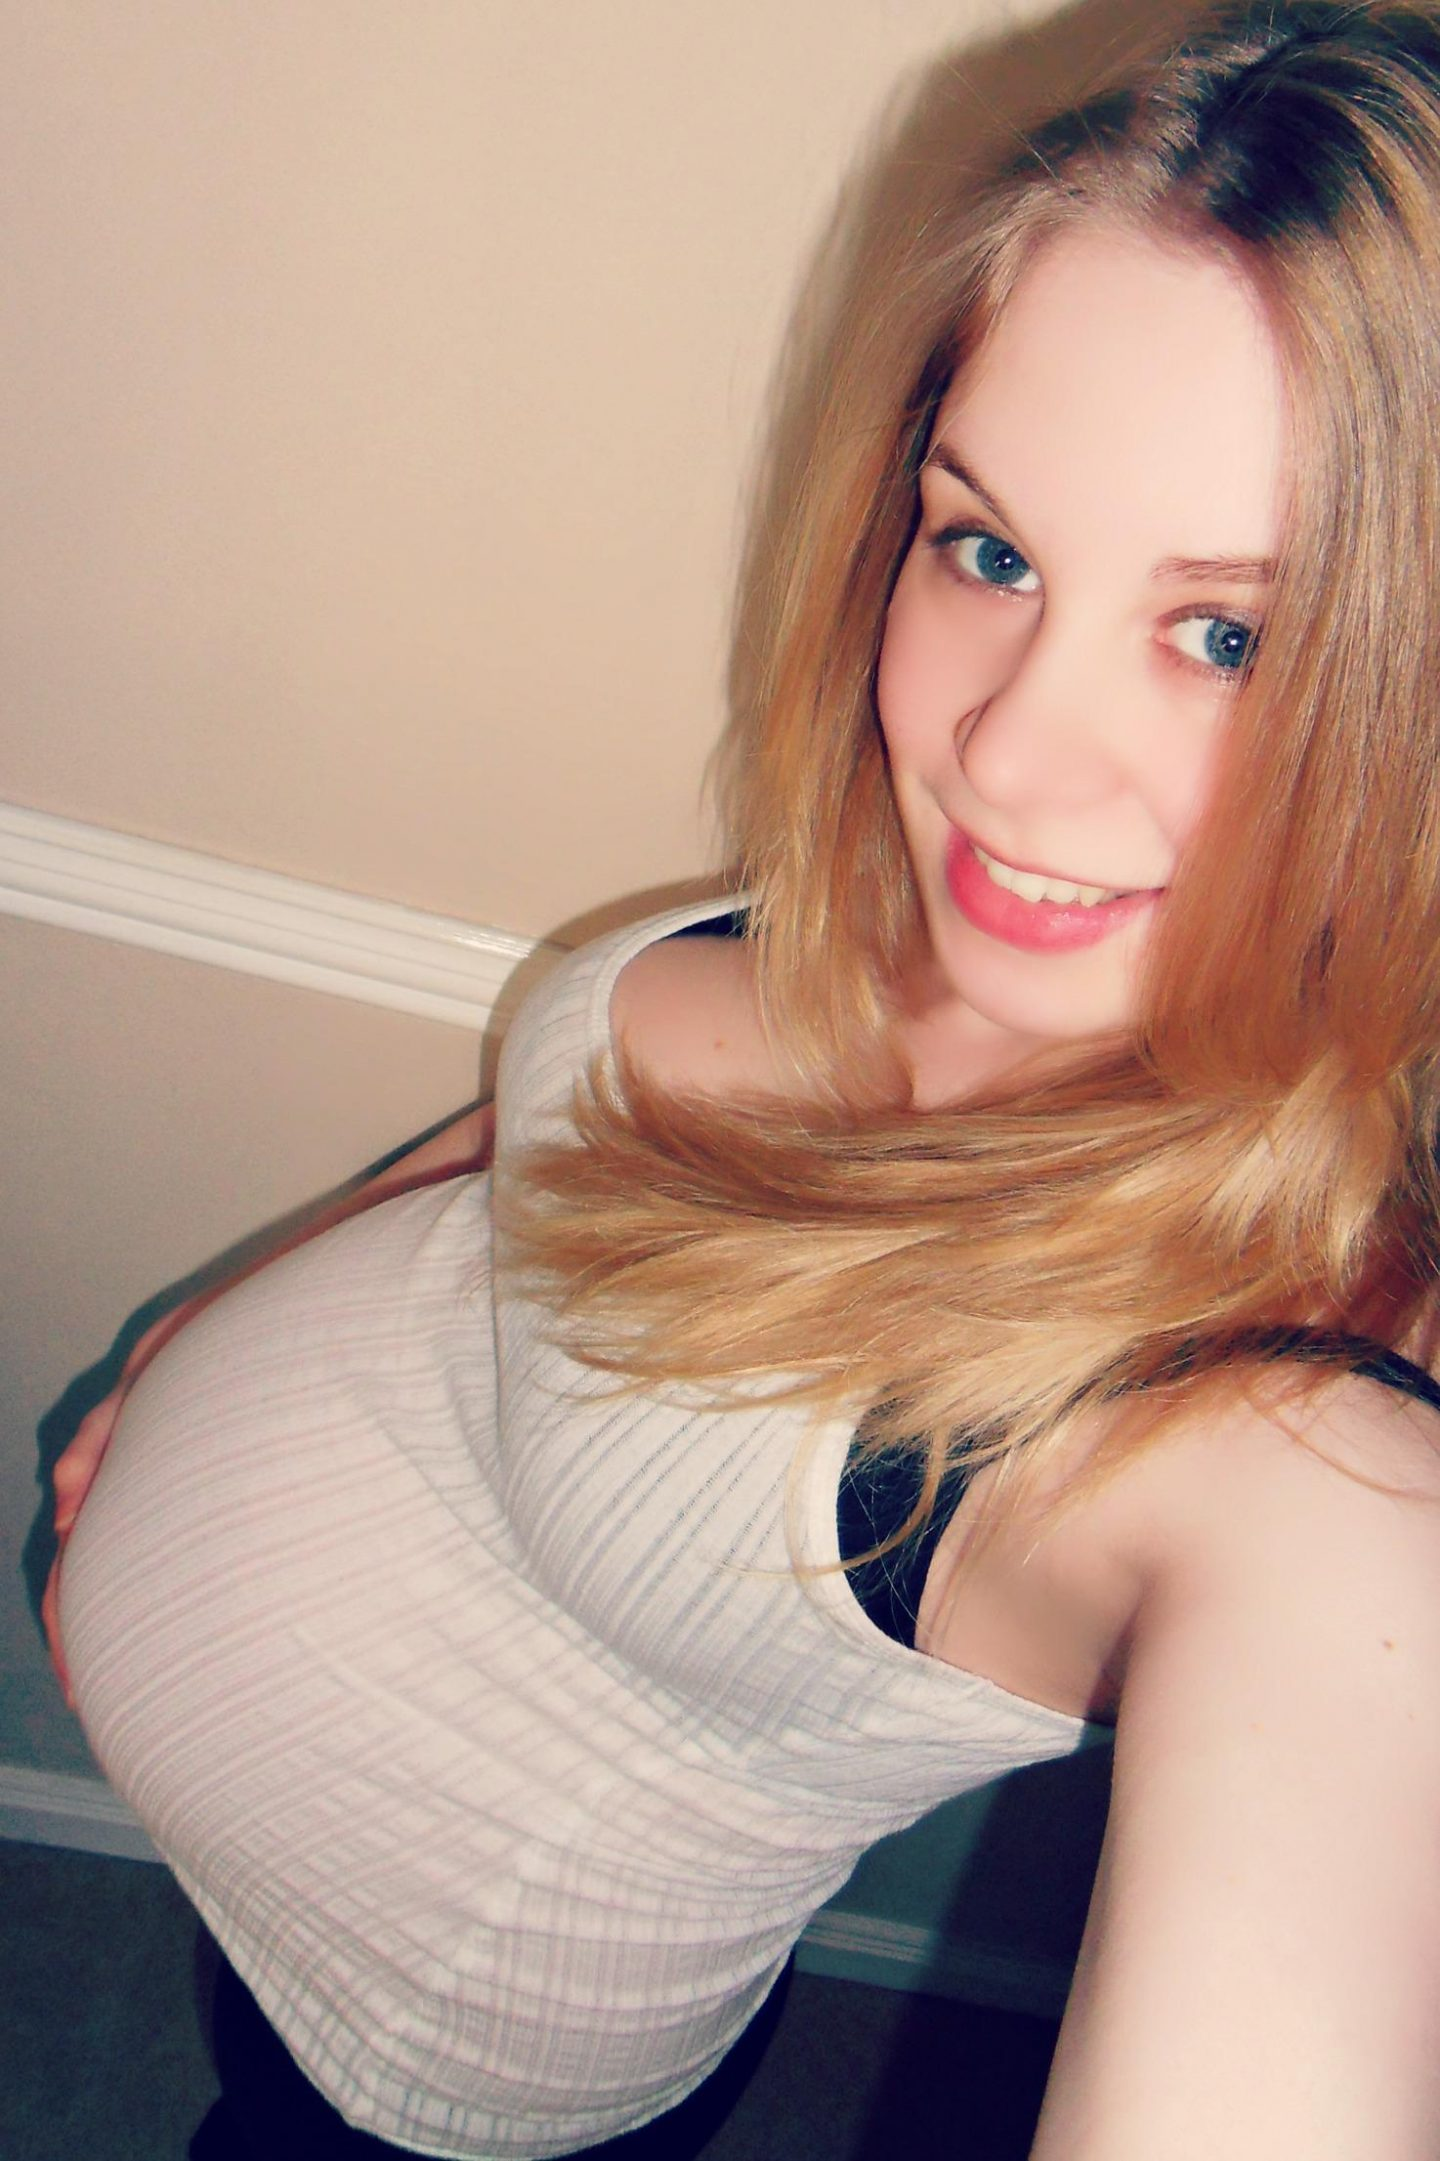 pregnant woman wearing white top